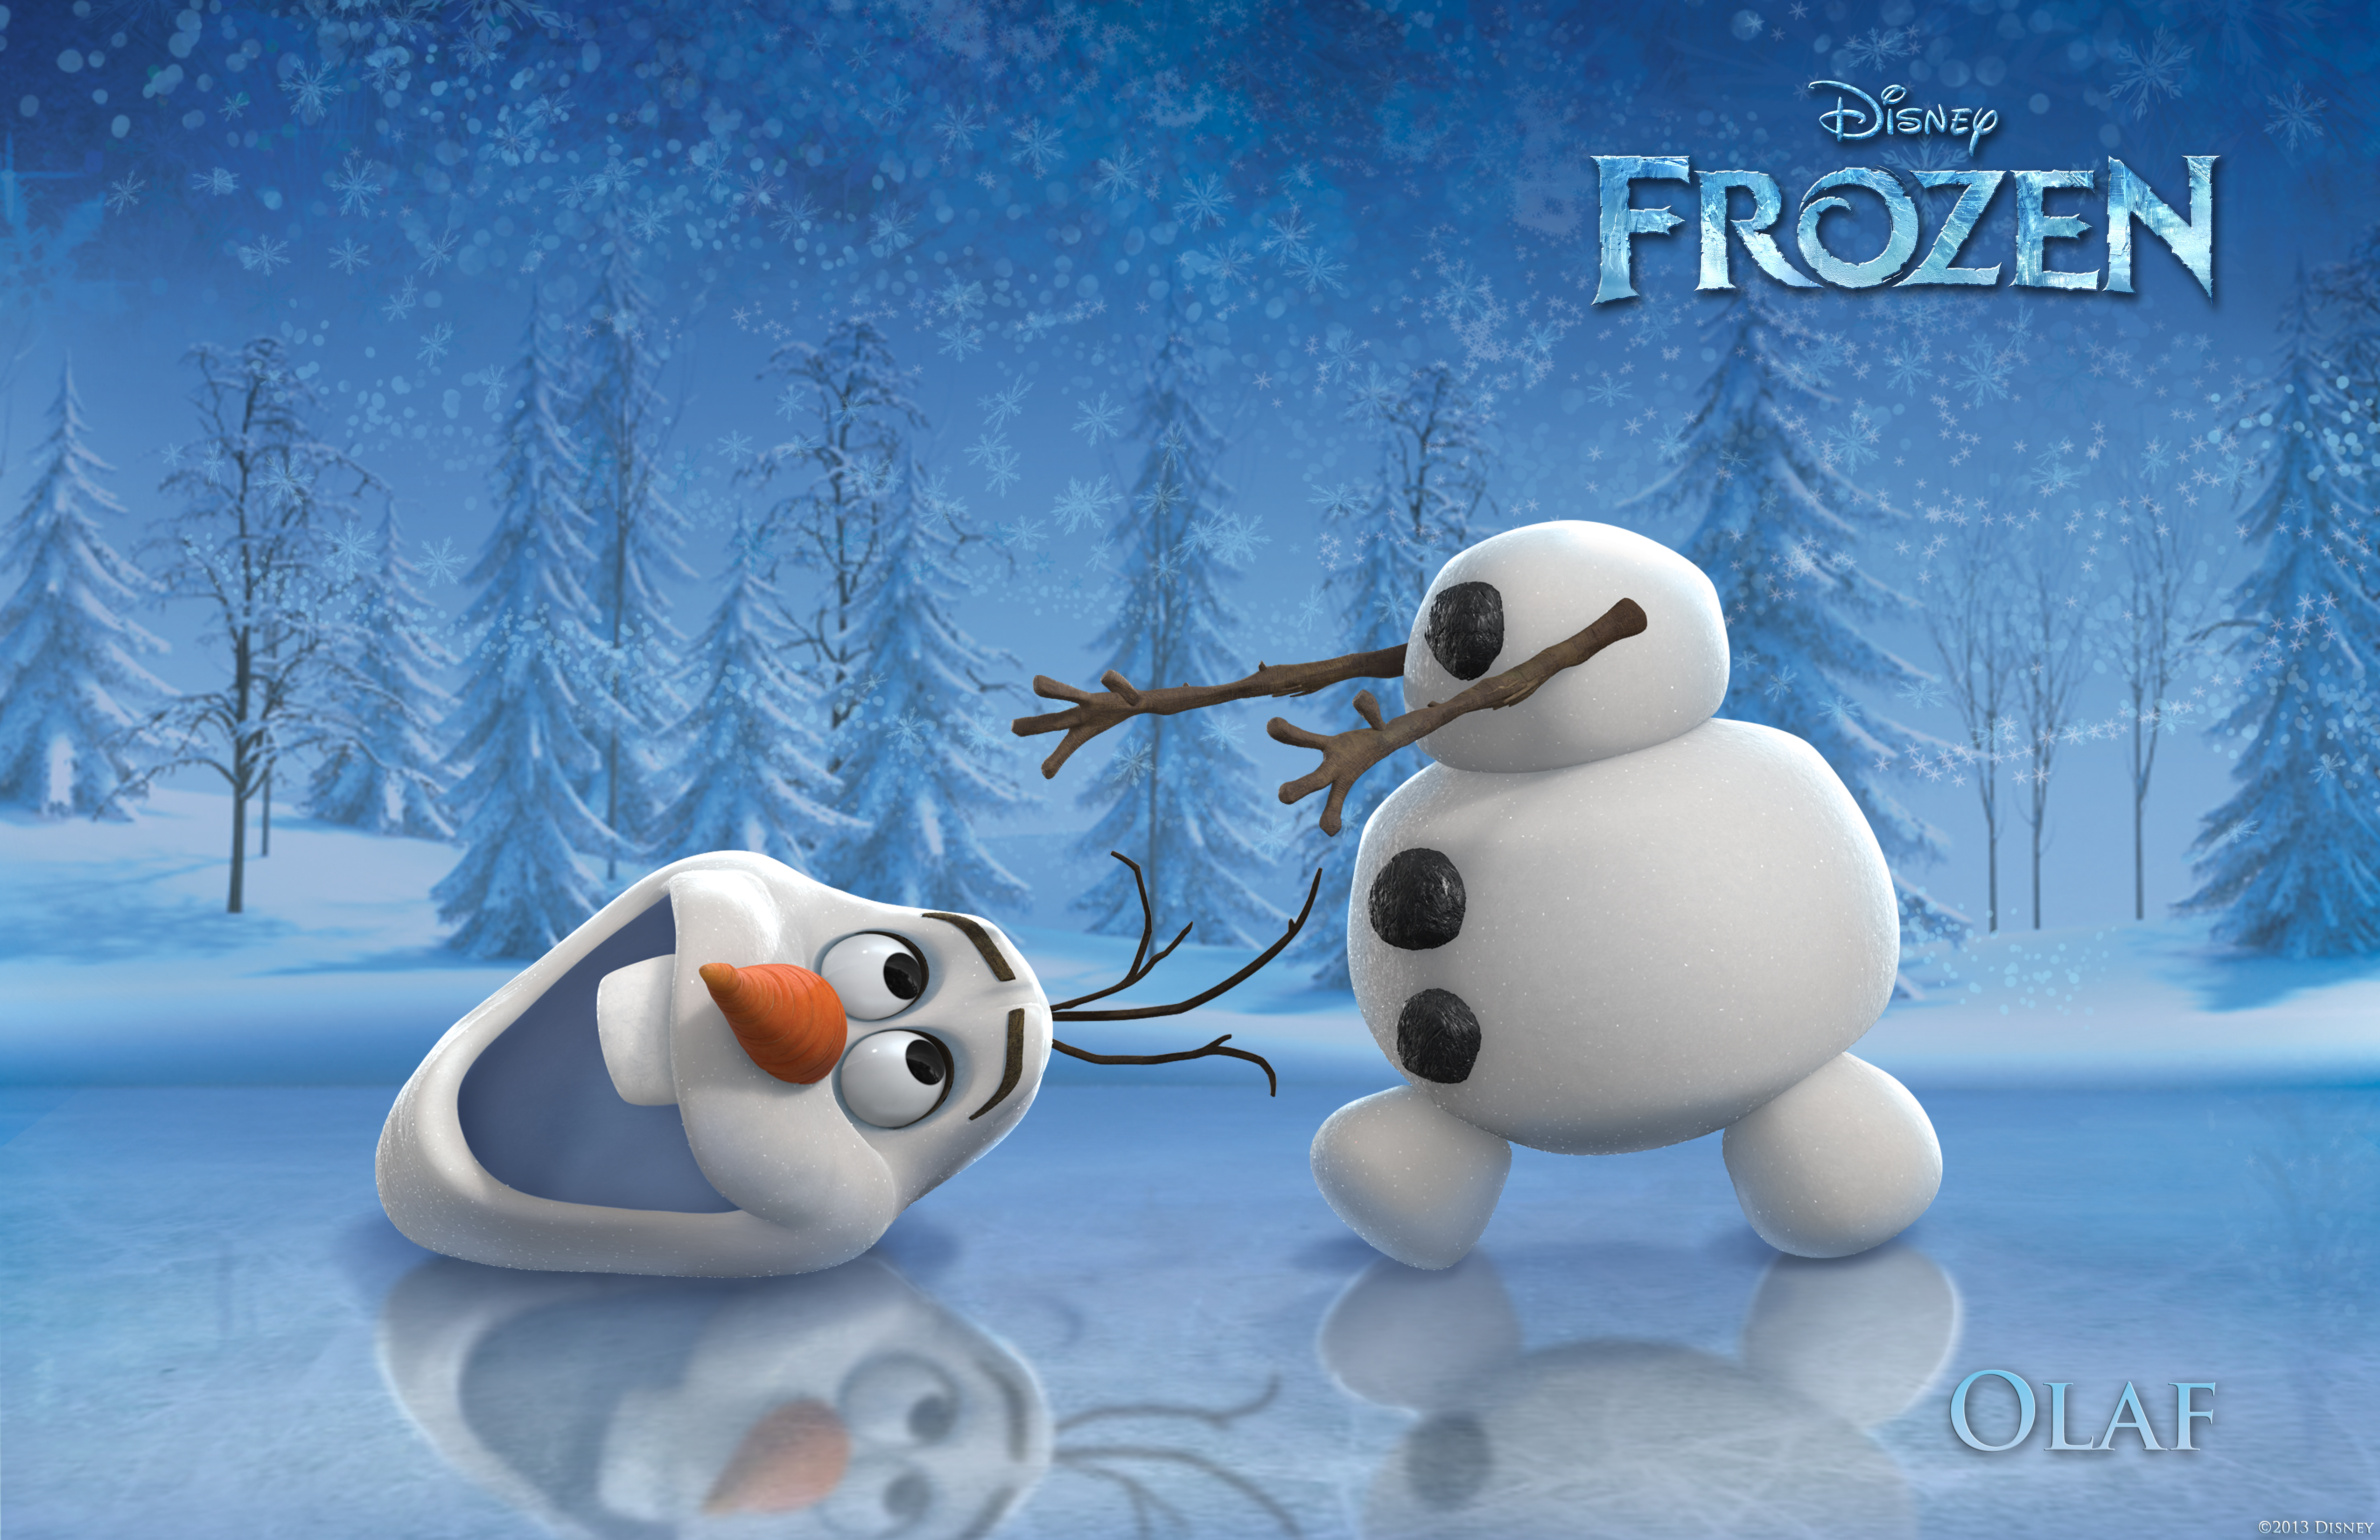 Frozen pictured olaf 169 2013 disney all rights reserved